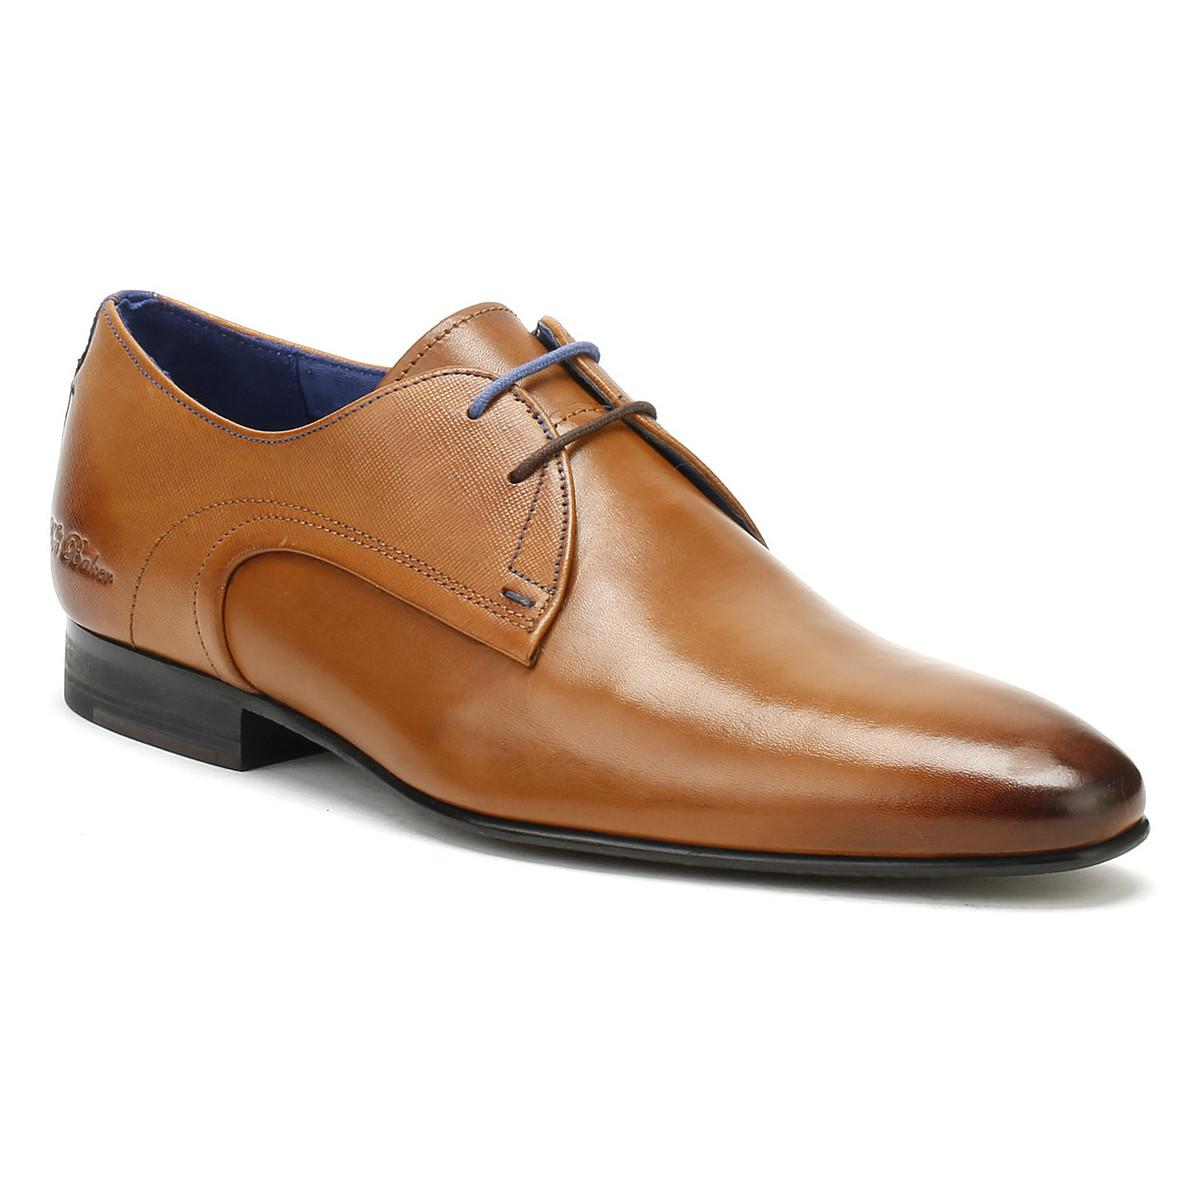 3ae587386f8 Ted Baker Mens Tan Leather Peair Shoes Men s Smart   Formal Shoes In ...